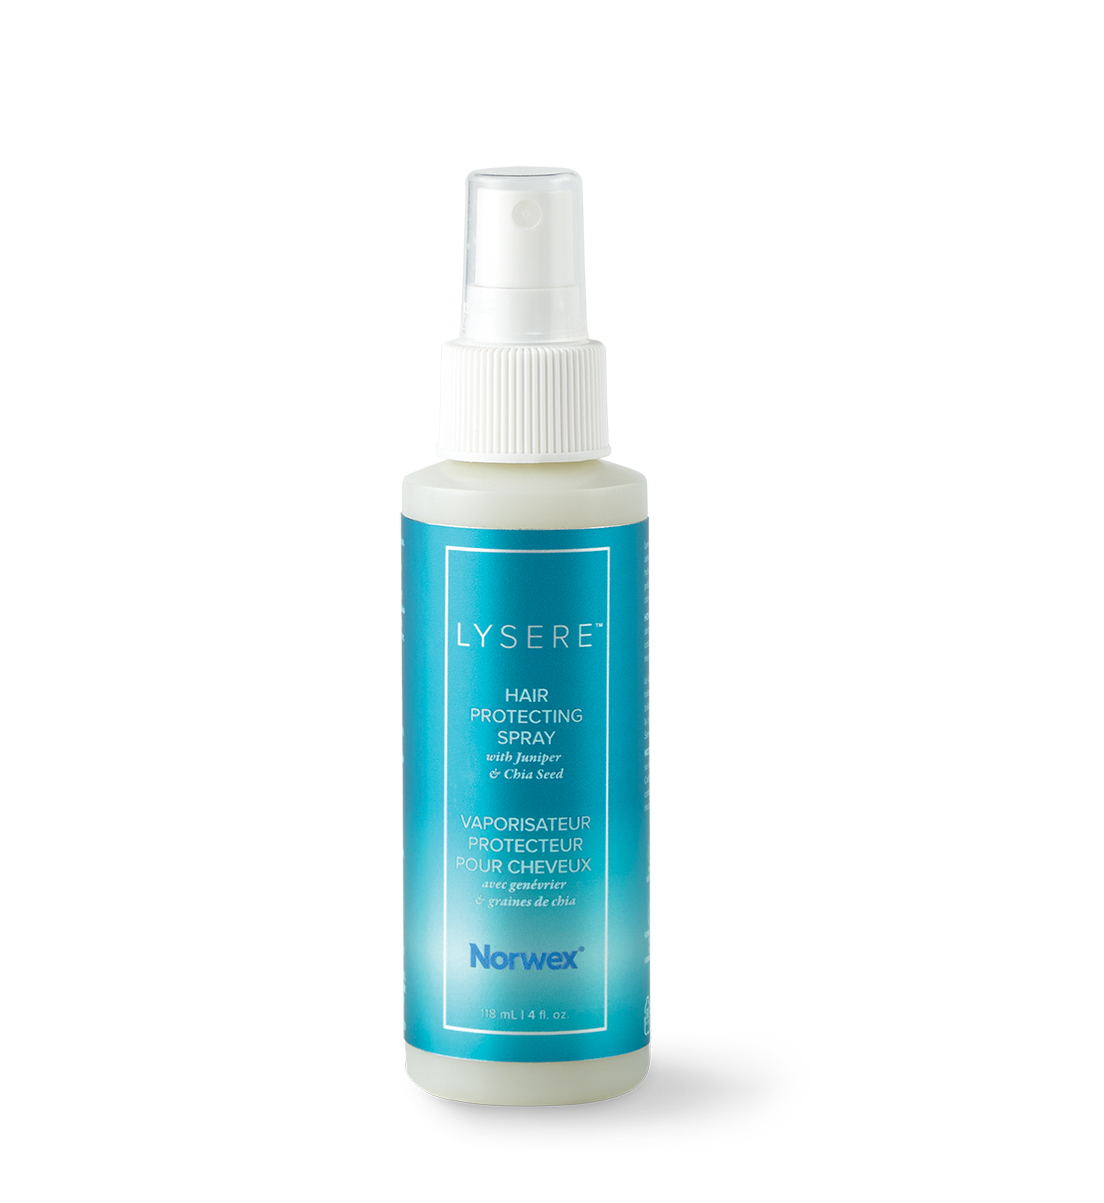 Lysere Hair Protecting Spray